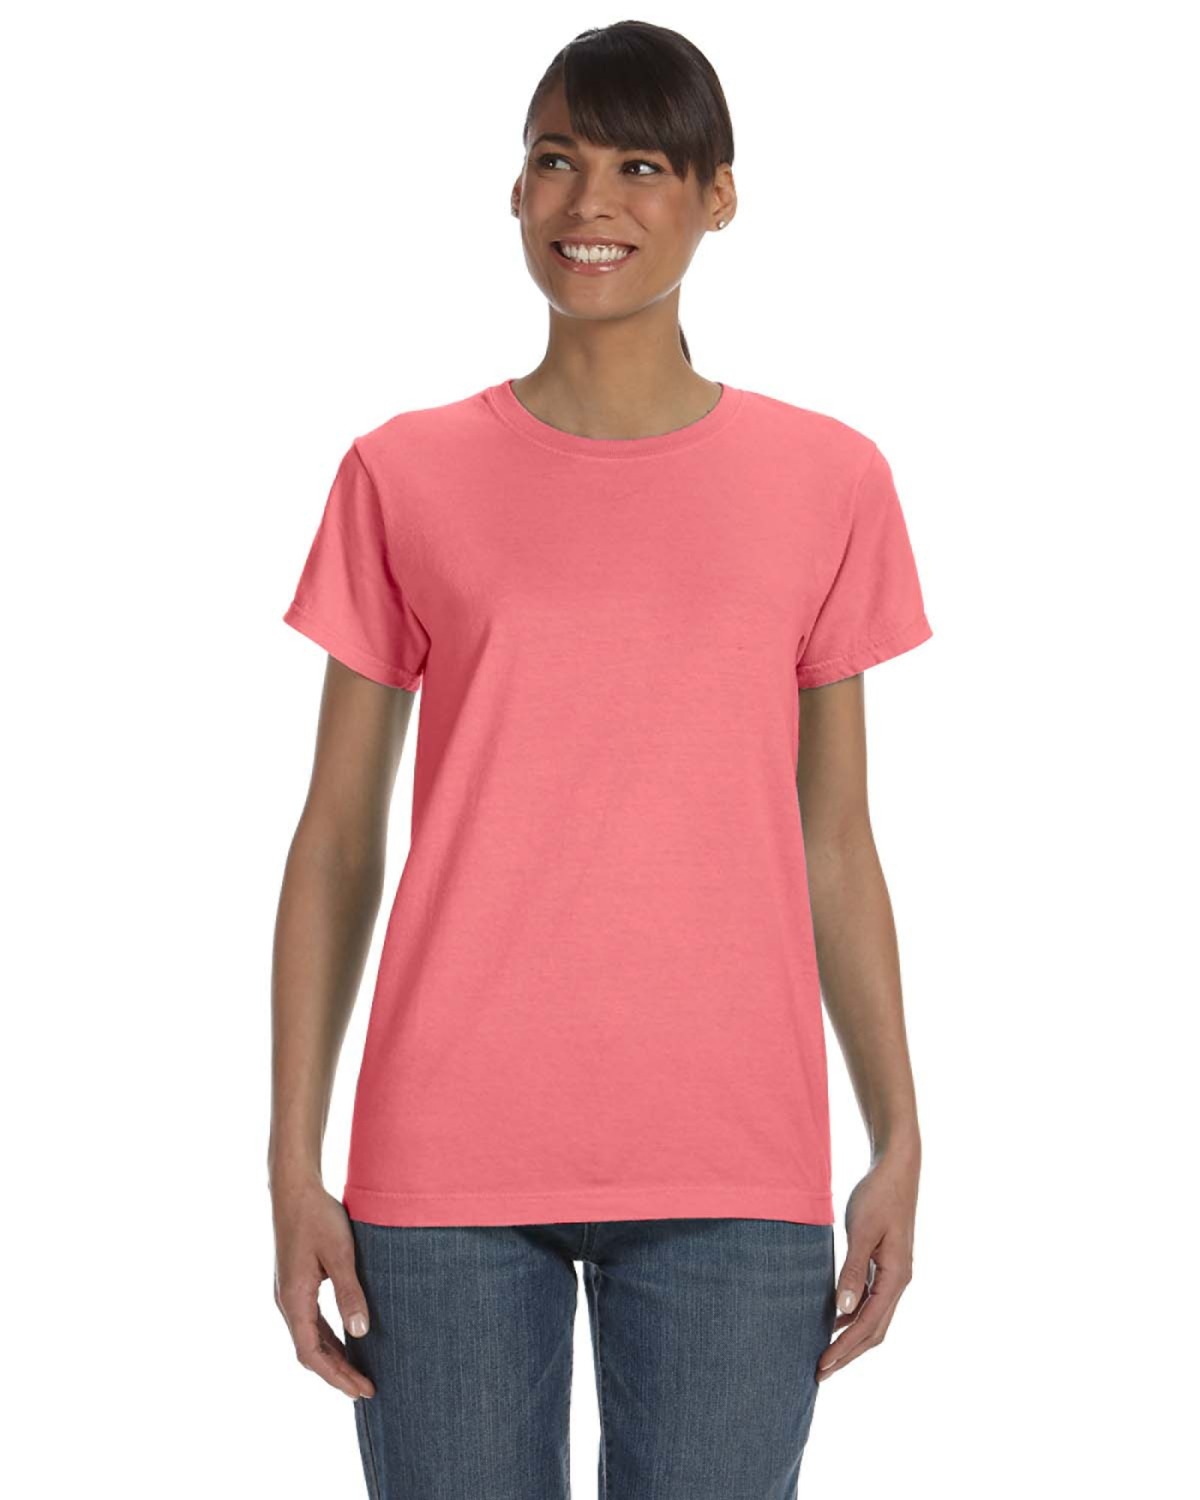 Comfort Colors C3333  Women's Ringspun Garment-Dyed T-Shirt